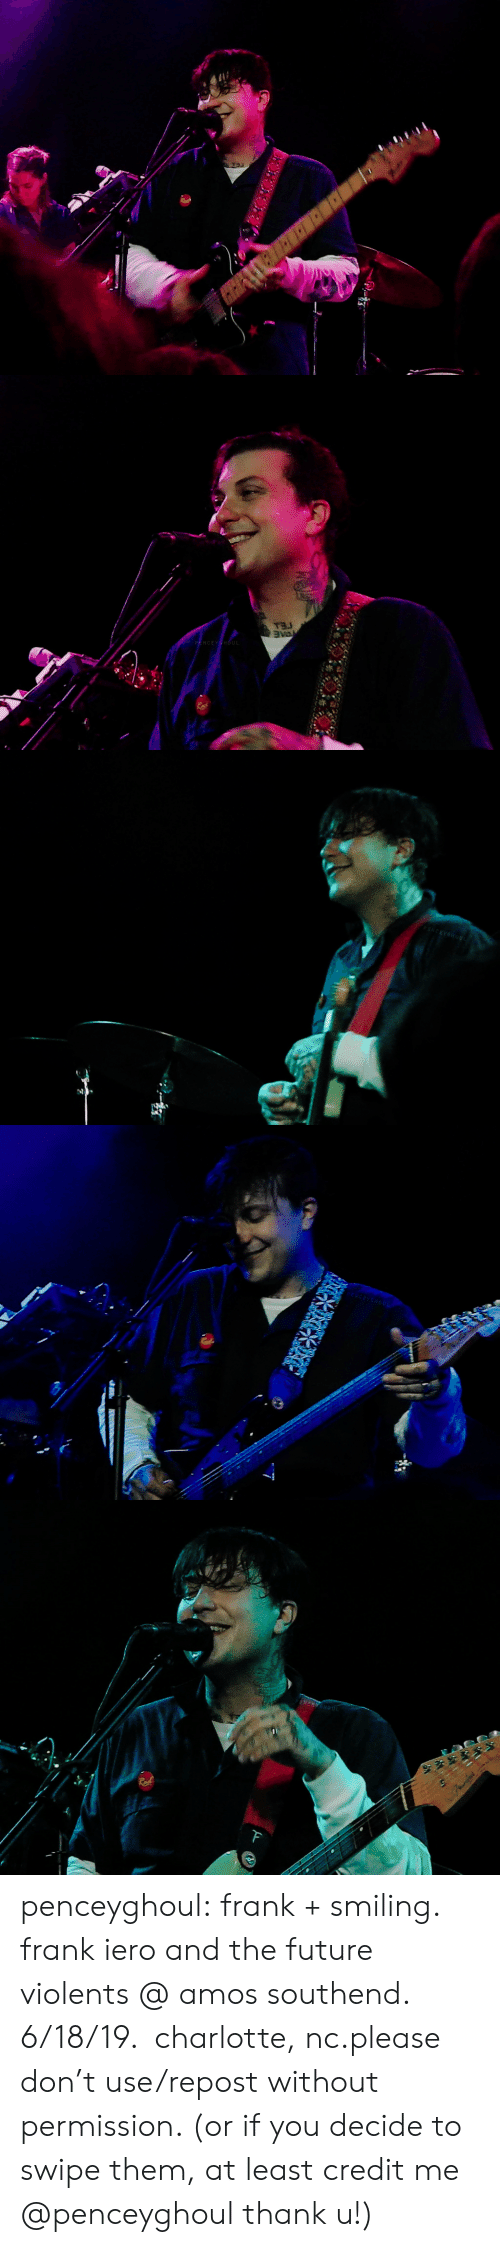 Future, Tumblr, and Blog: PENCEYGHO   DAE  PENCEYHOUL   PENCEYGH oUI   GHOUL   ENCEYGHOUt  F penceyghoul:  frank + smiling.  frank iero and the future violents @ amos southend.  6/18/19.  charlotte, nc.please don't use/repost without permission. (or if you decide to swipe them, at least credit me @penceyghoul​ thank u!)